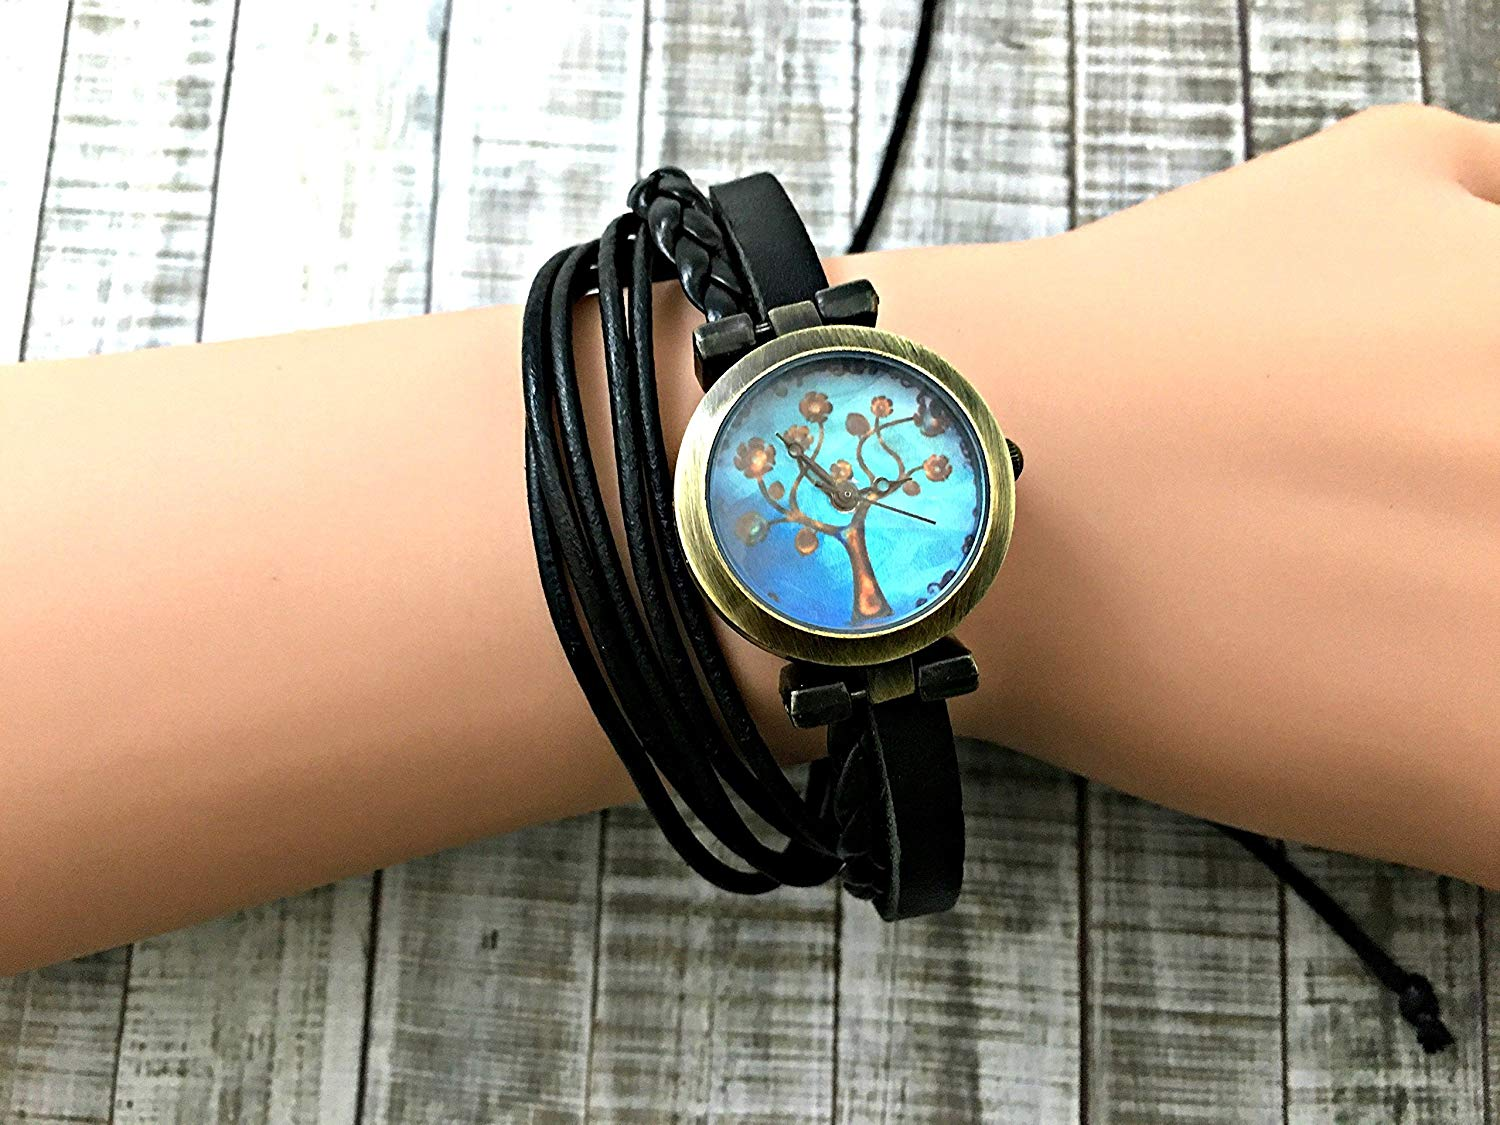 Tree Wrap Bracelet Leather Watch, Leather Wrap Bracelet Watch, Leather Wrap Art Watch, Vintage Retro Wrap Bracelet Watch, Wrap Genuine Leather Watch 012